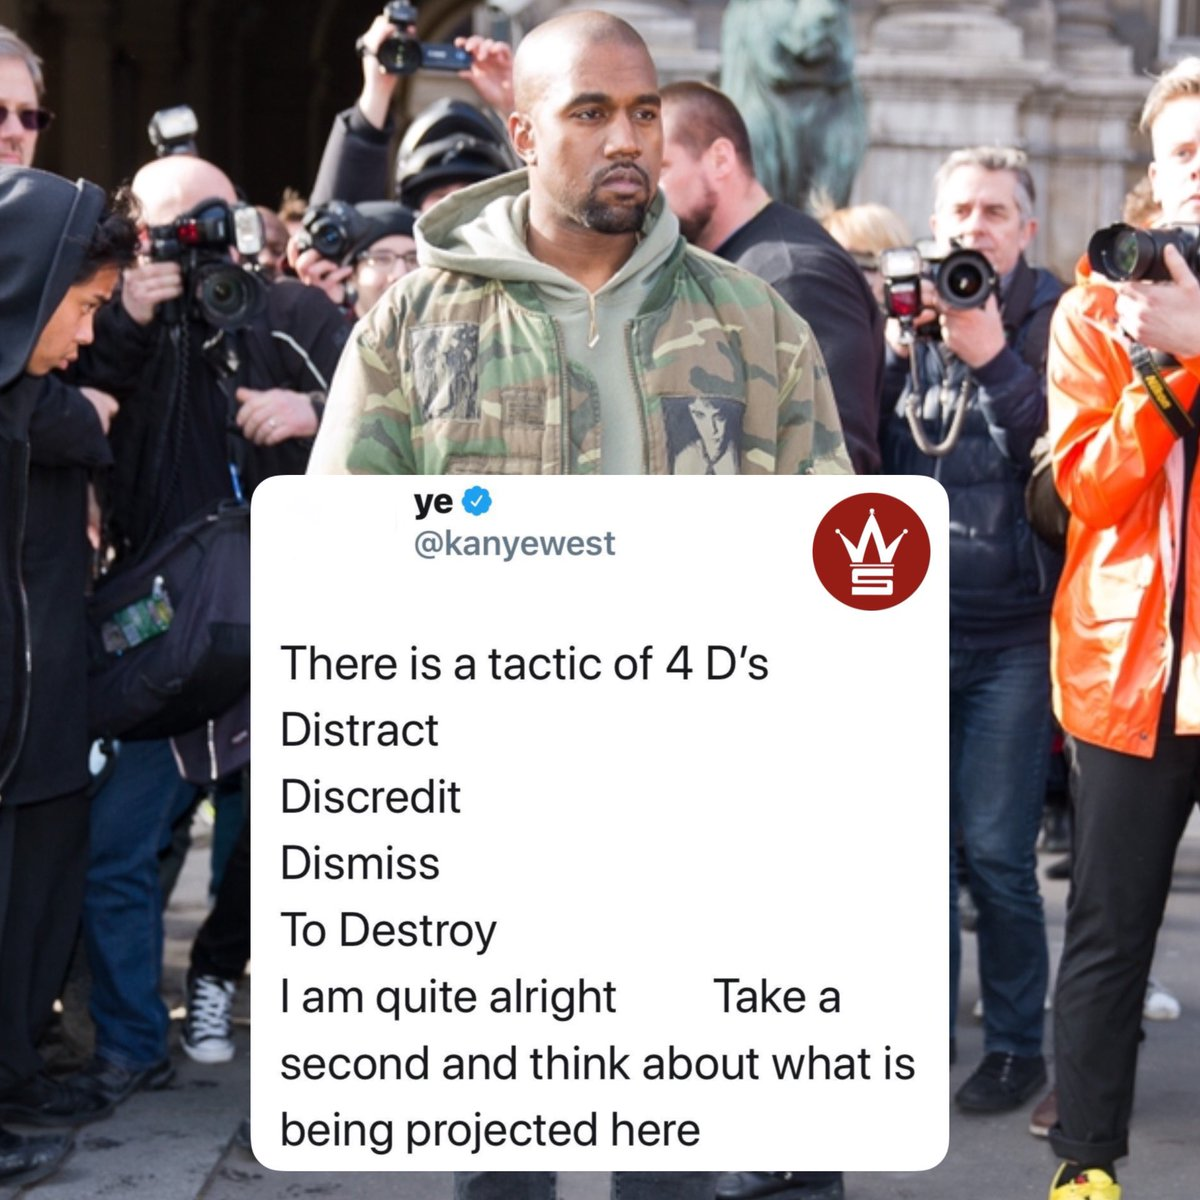 Kanye West tweeted that hes Quite Alright earlier today...